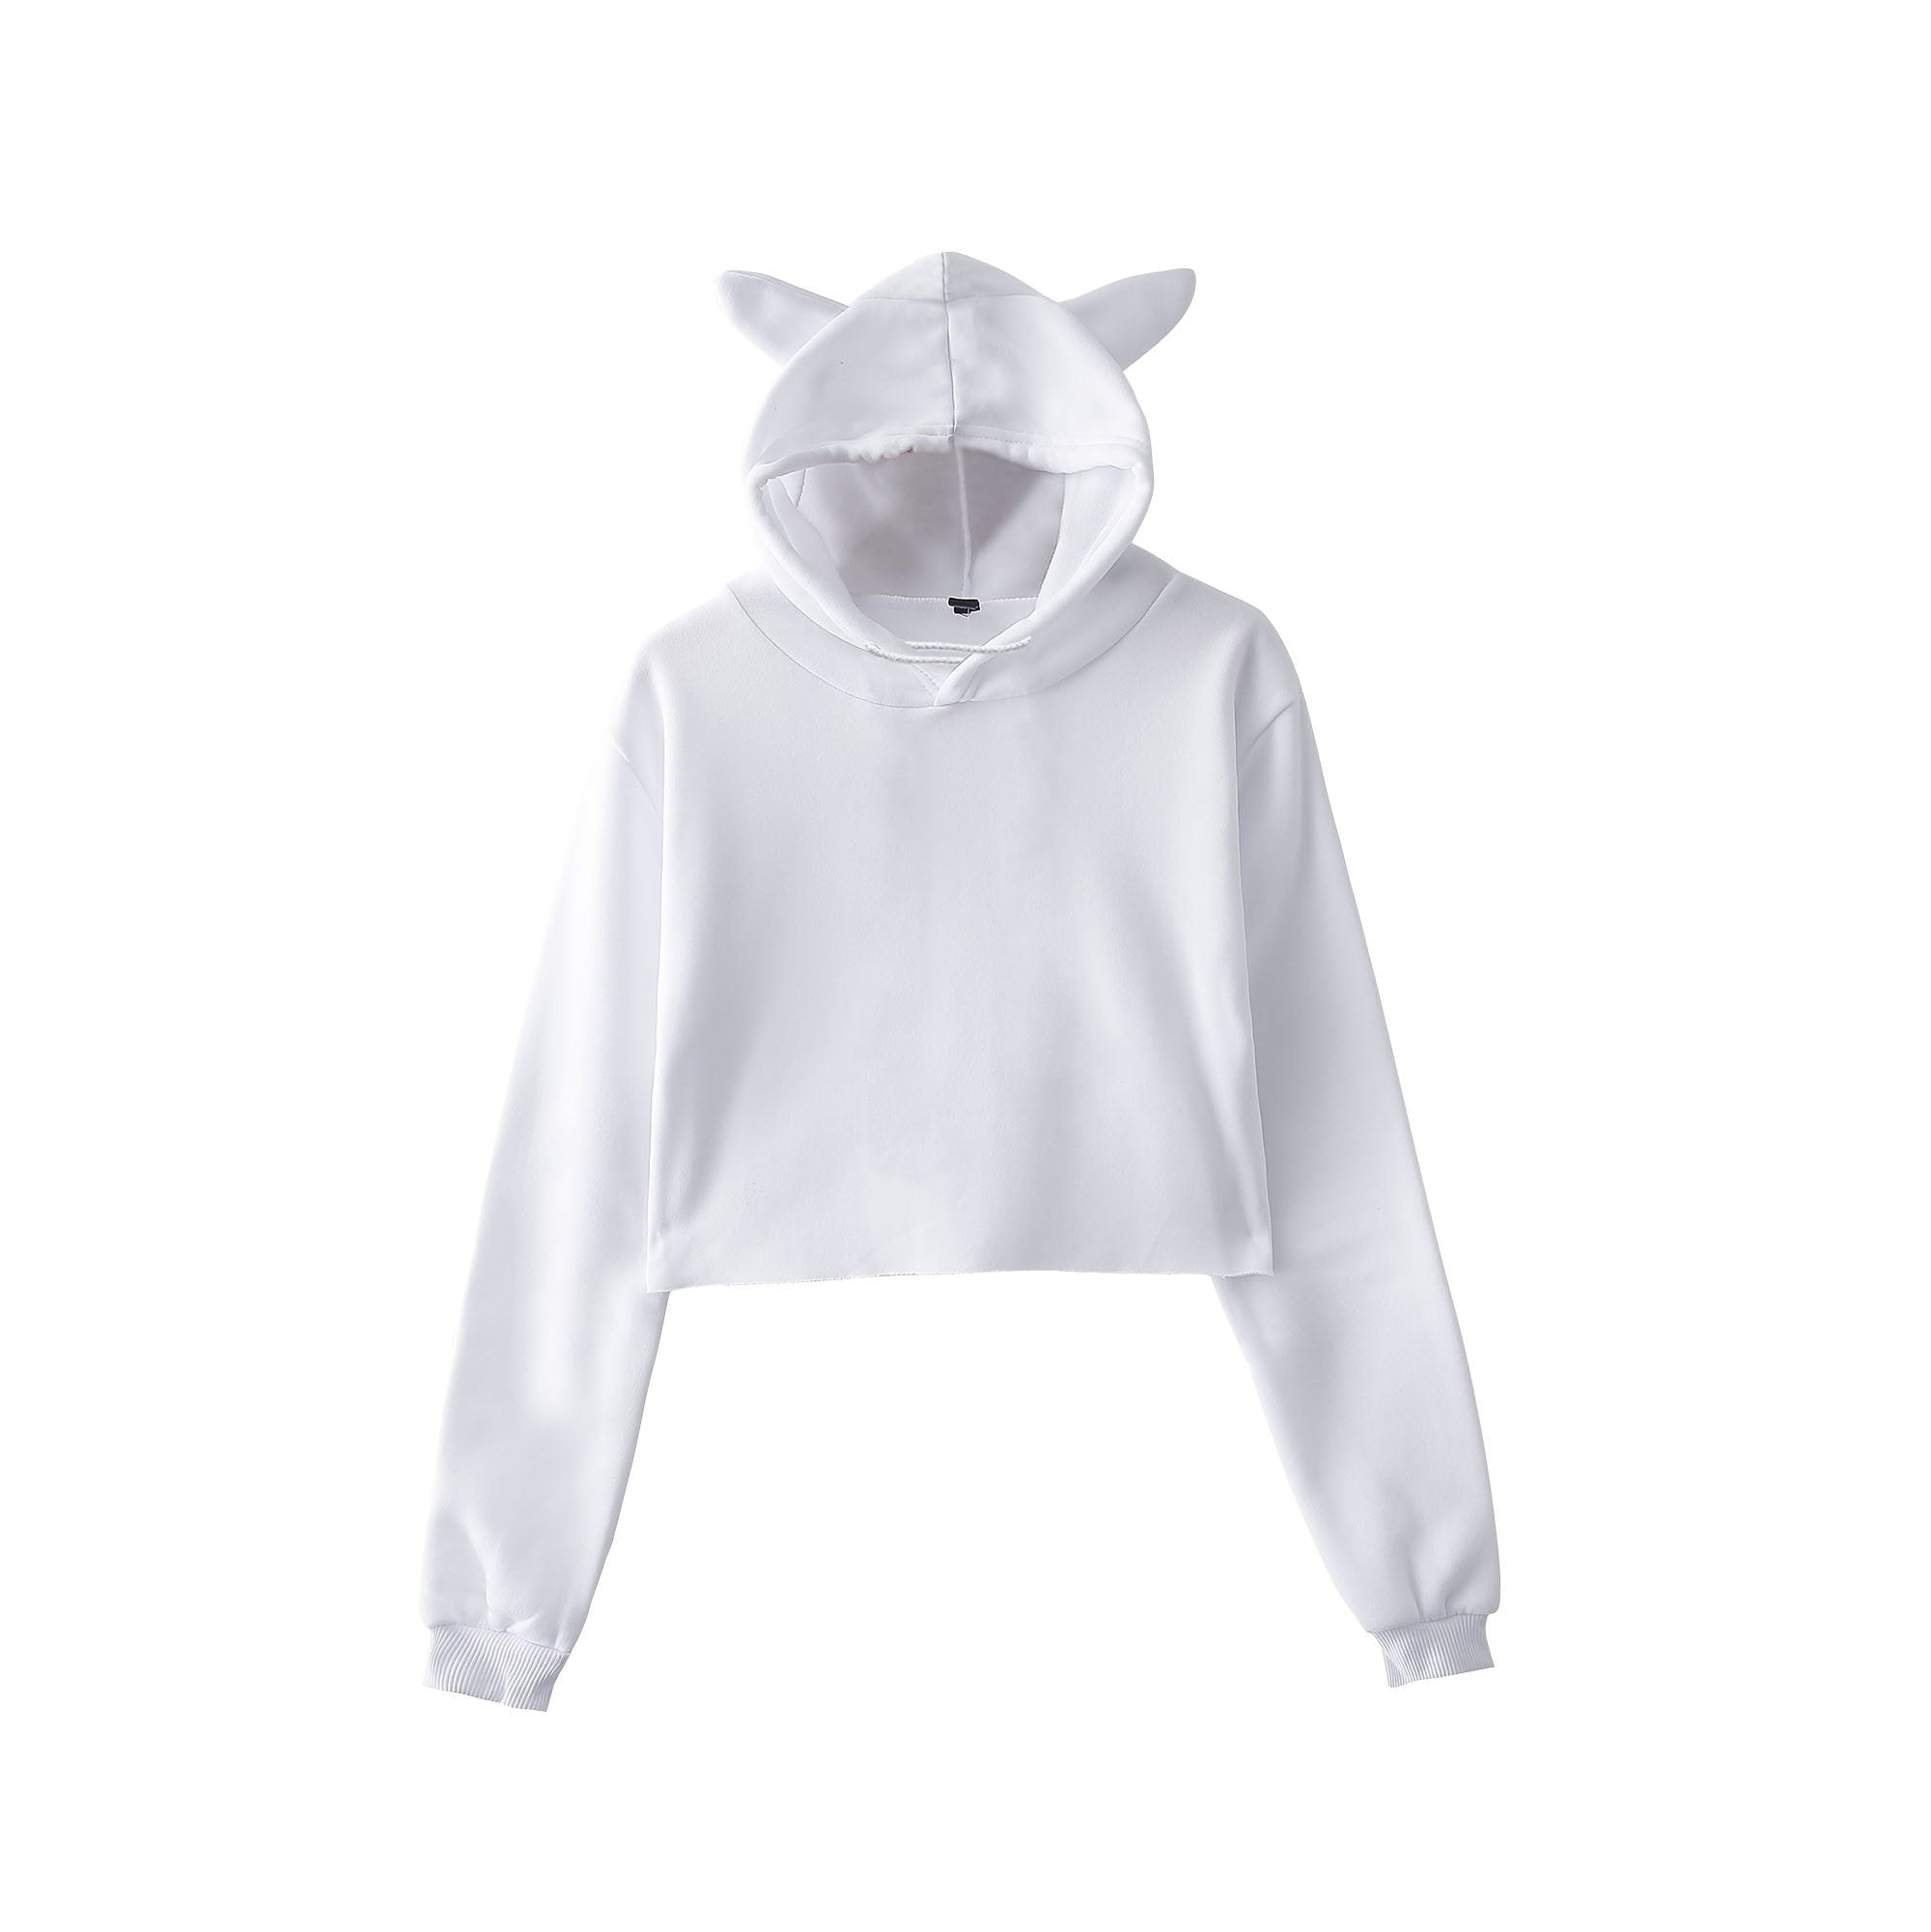 BTS Cute Cropped Hoodies Kawaii Womens Sweatshirts Hoodie Crop Tops Solid Catuotelab-uotelab